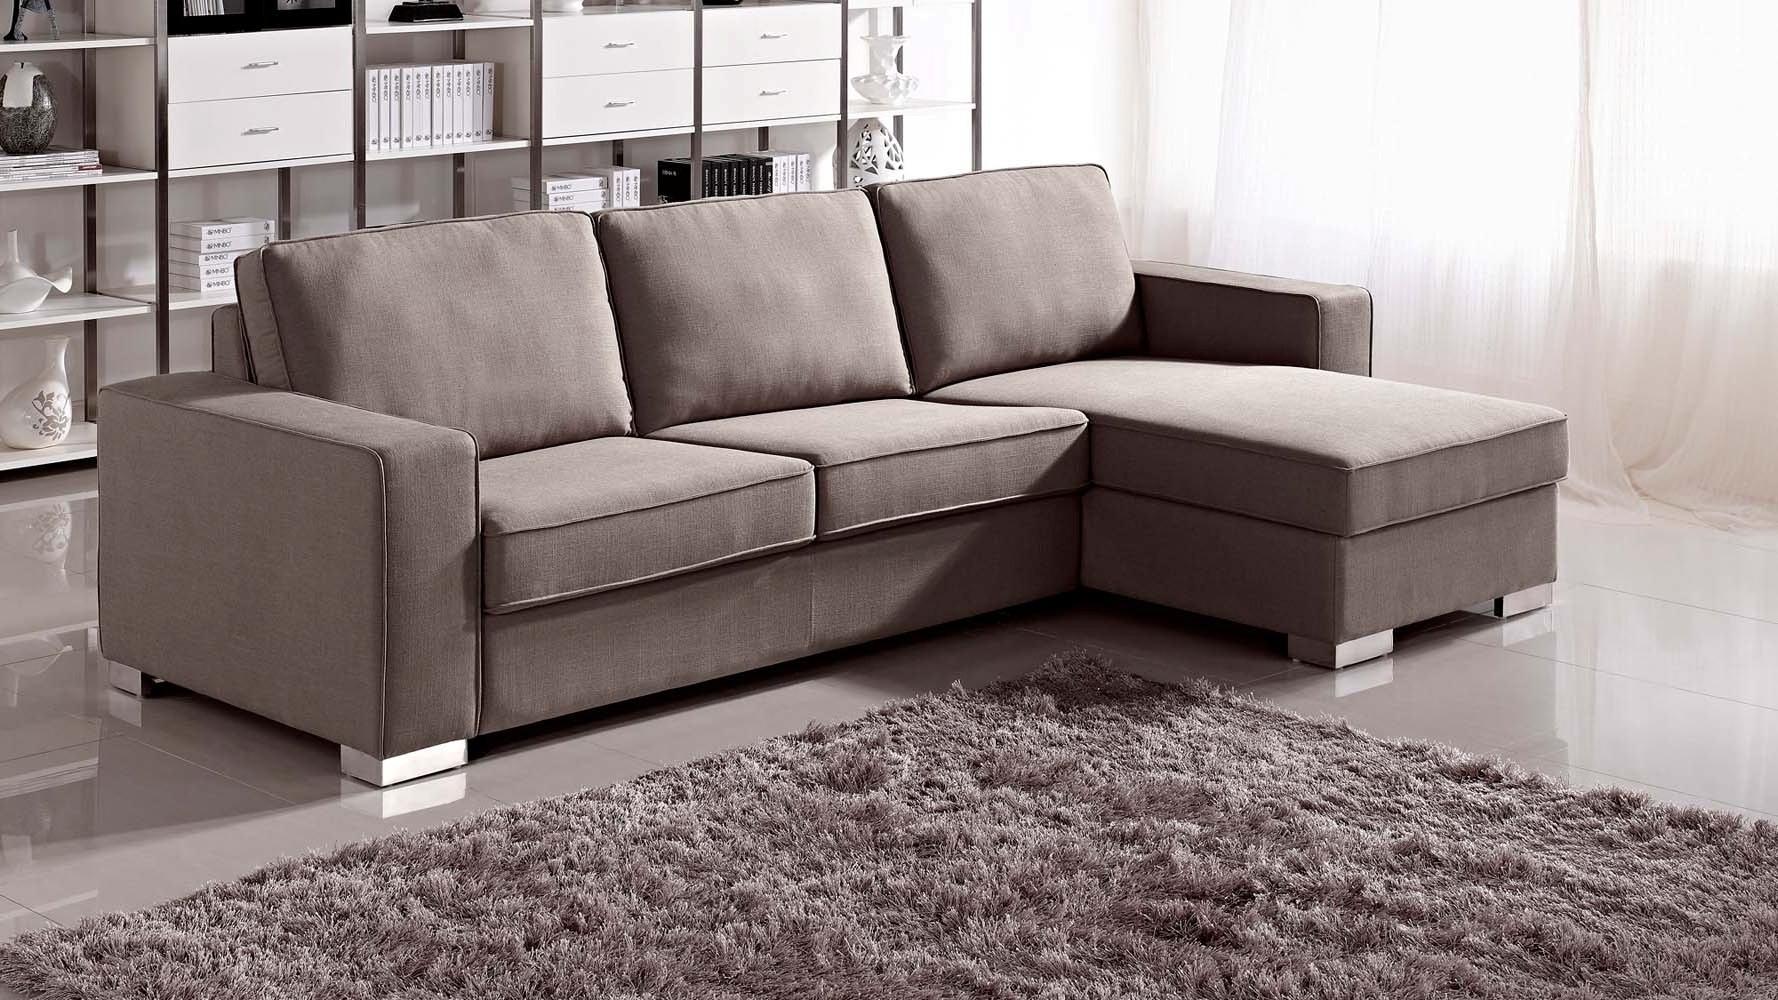 2019 Sleeper Sectional Sofas Inside Innovative Sofa Sleeper Sectionals Beautiful Interior Design Style (View 5 of 20)